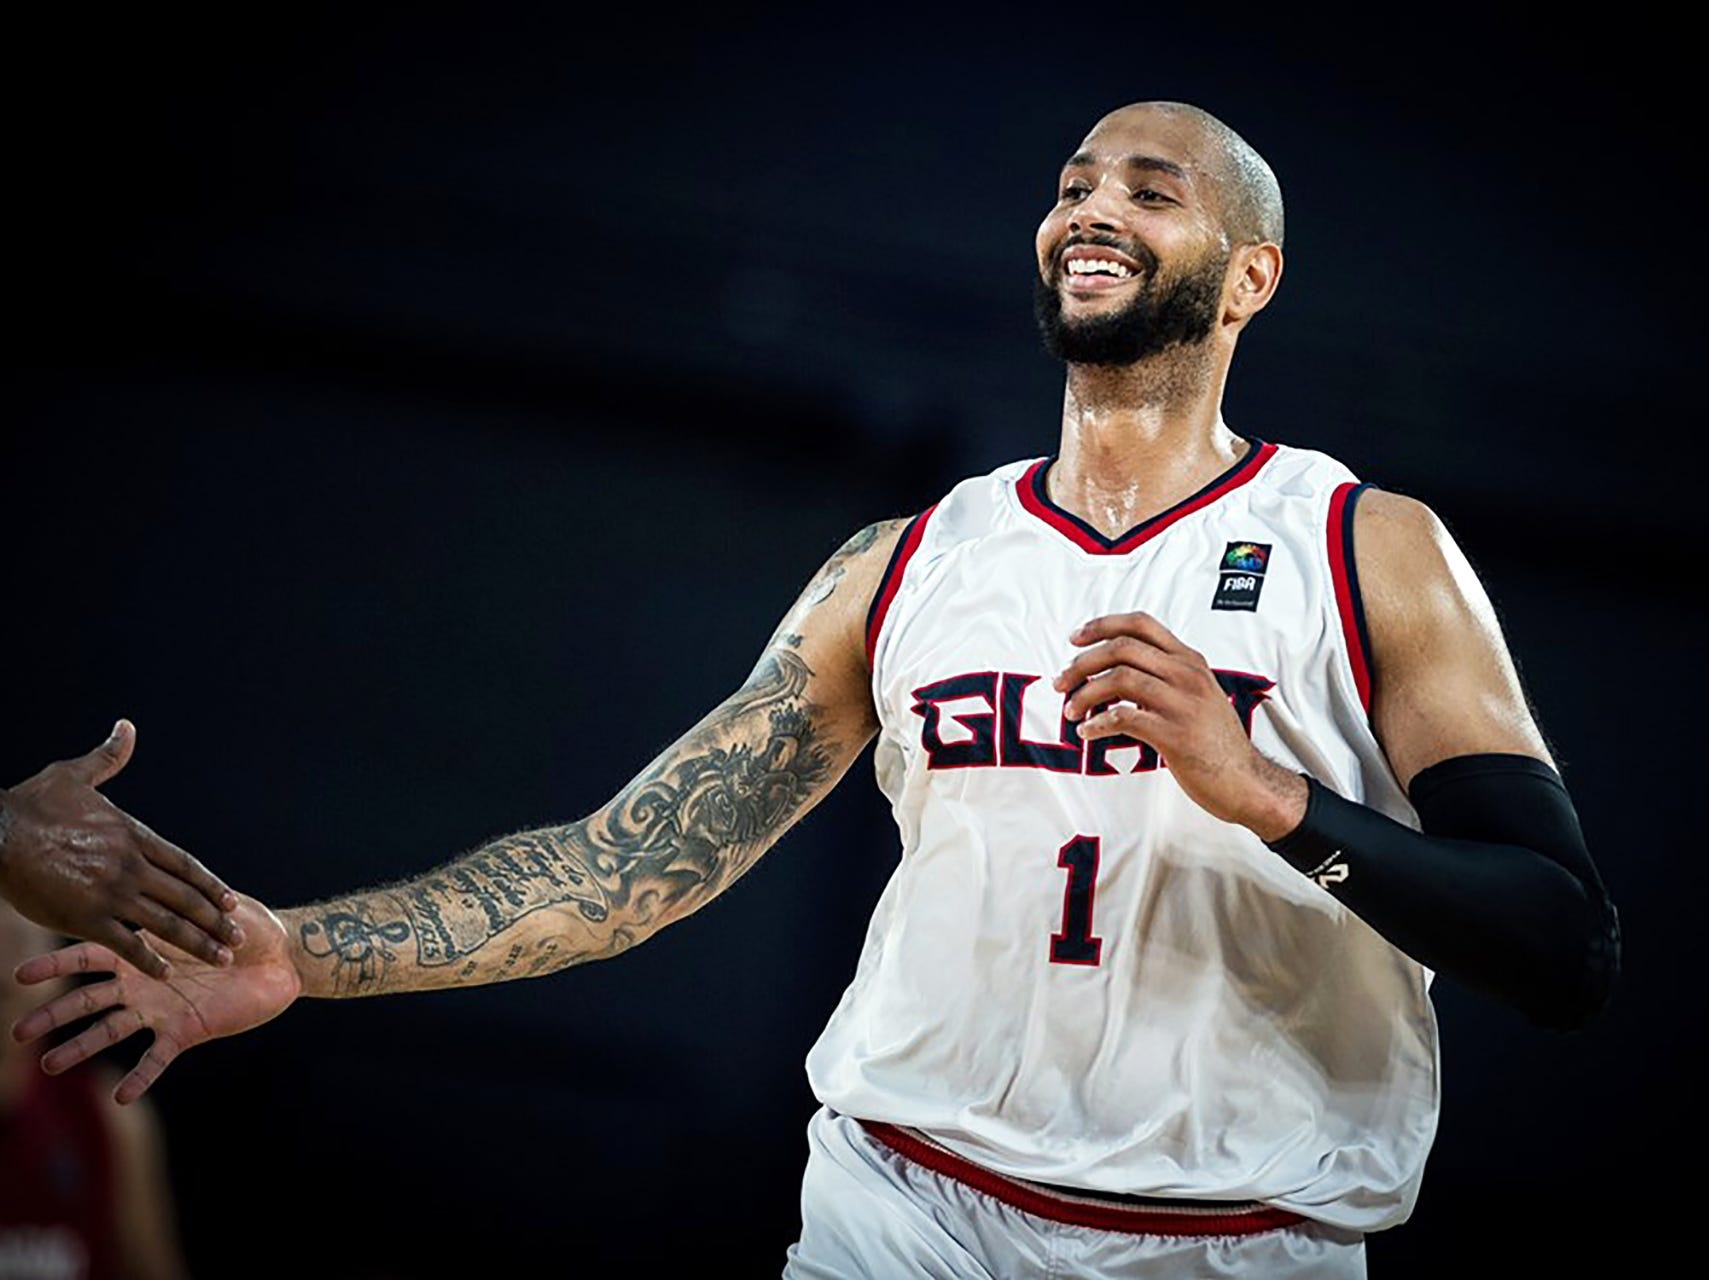 After fouling out of their prior game against Thailand, Team Guam center Curtis Washington played a pivotal role in Guam's victory over World No. 73 ranked indonesia on Thursday night in Thailand. Washington had 14 points, 11 rebounds, three blocked shots and two steals.